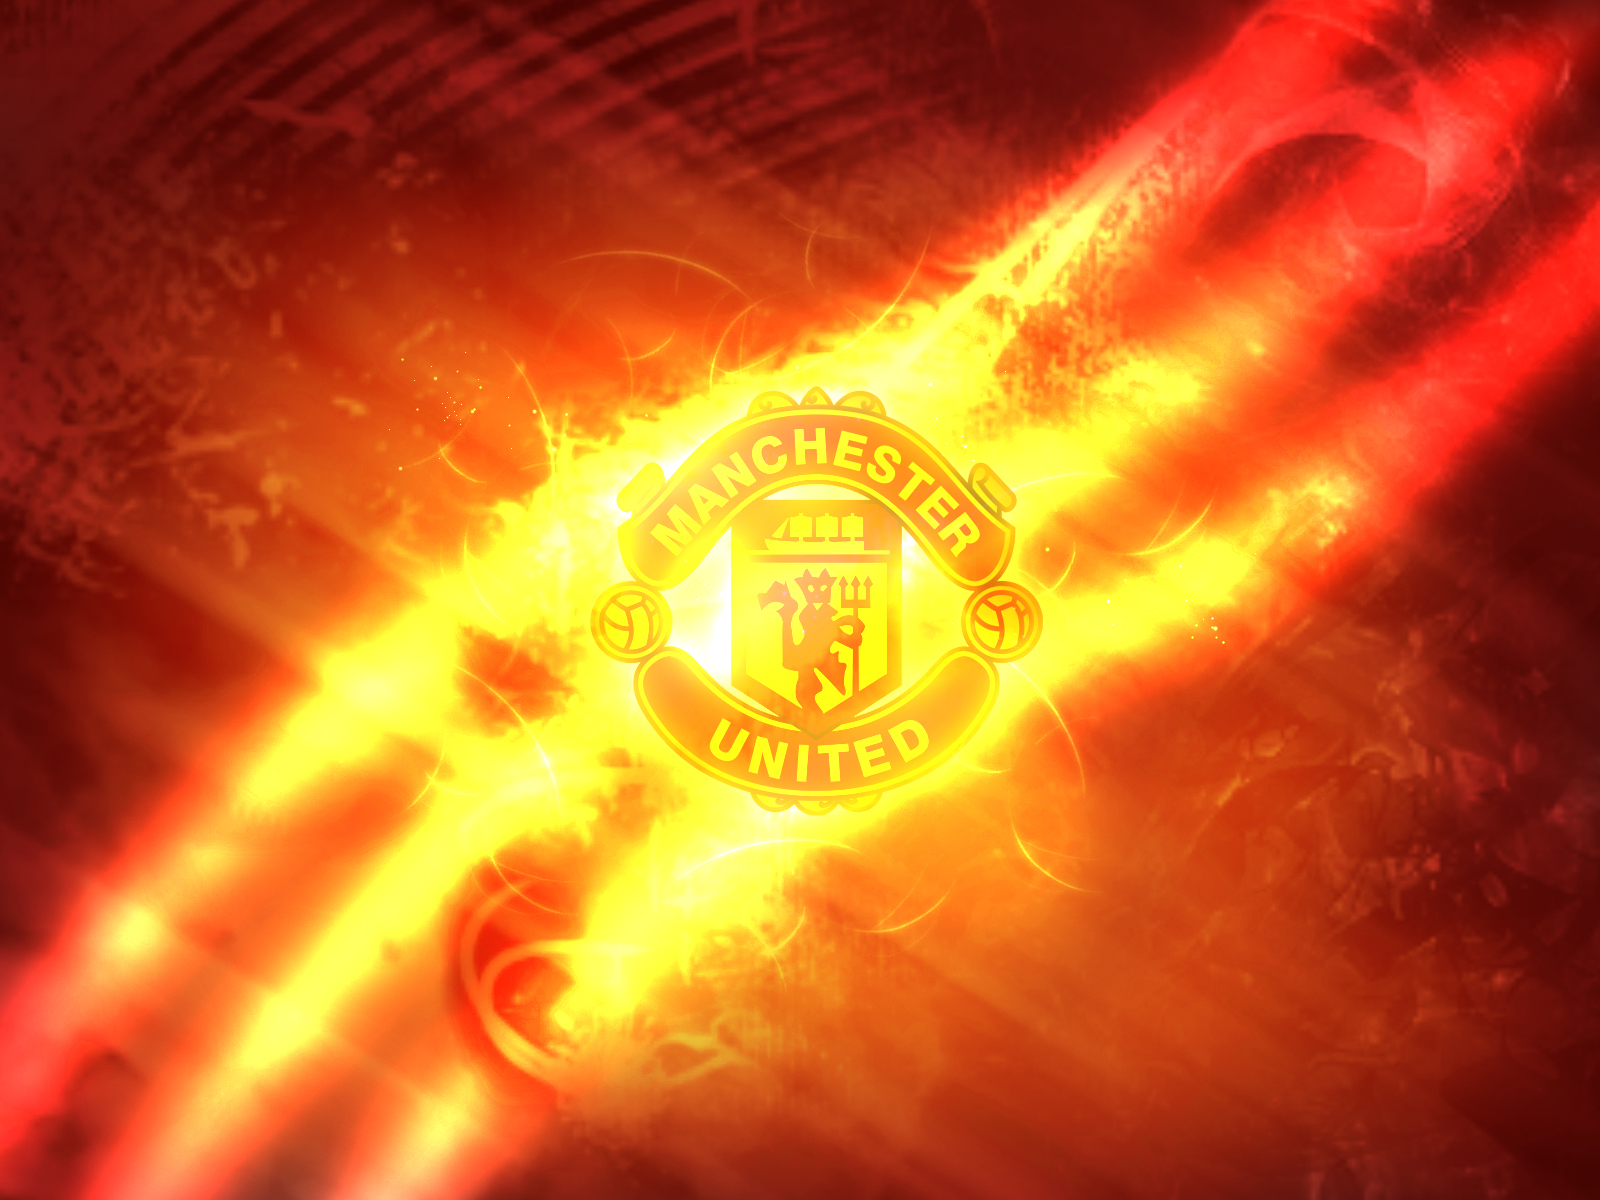 Hd Background Wallpaper 800x600: Manchester United Wallpapers HD 2012